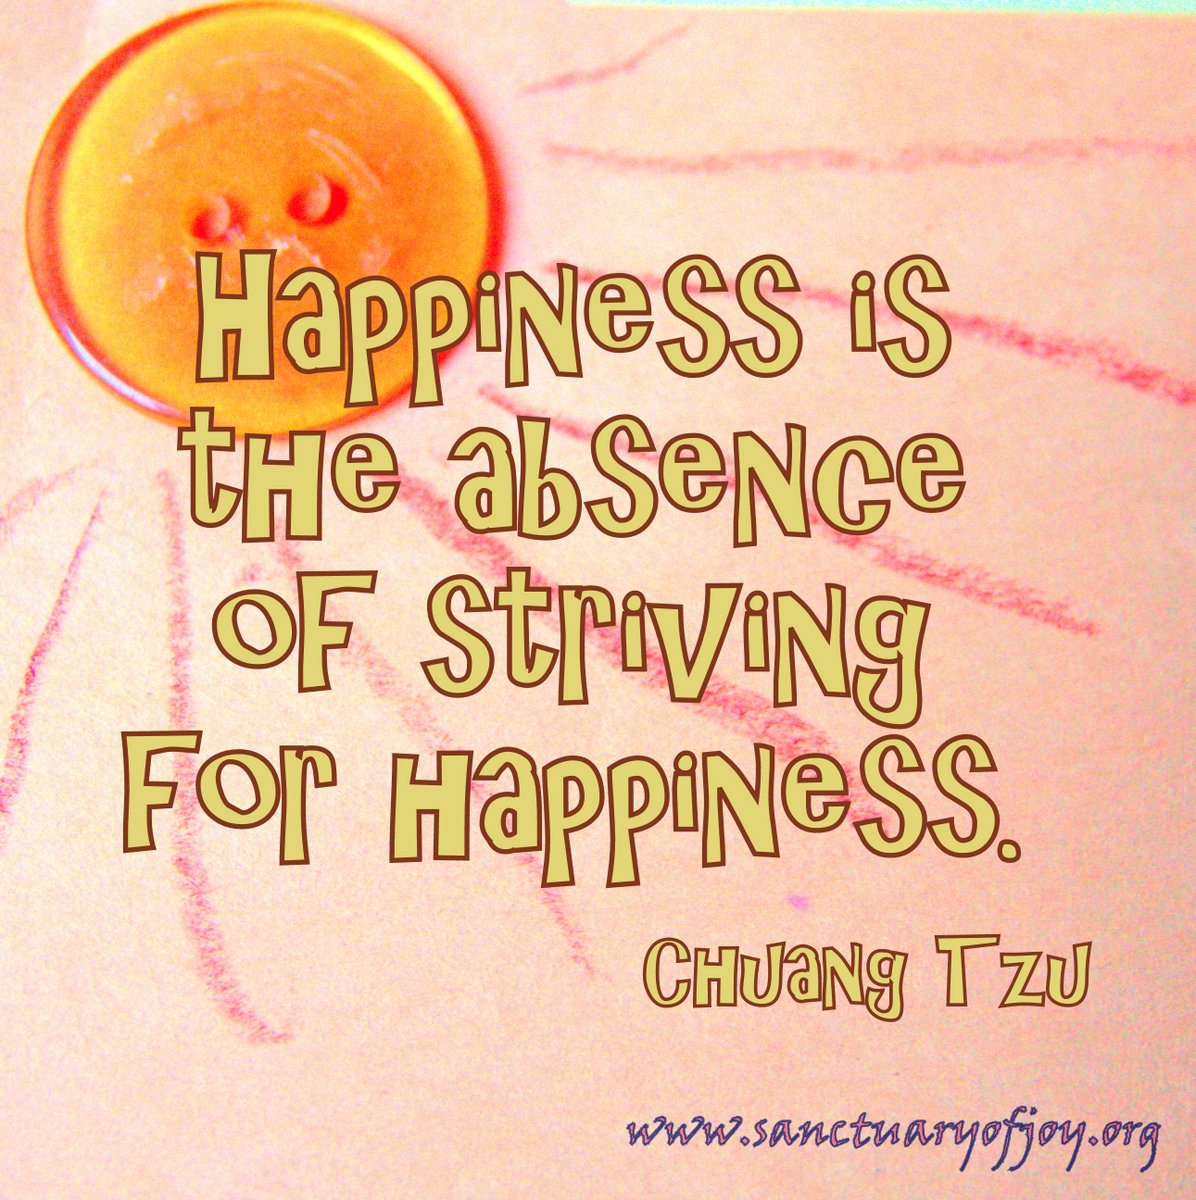 Happiness is the absence of striving for happiness